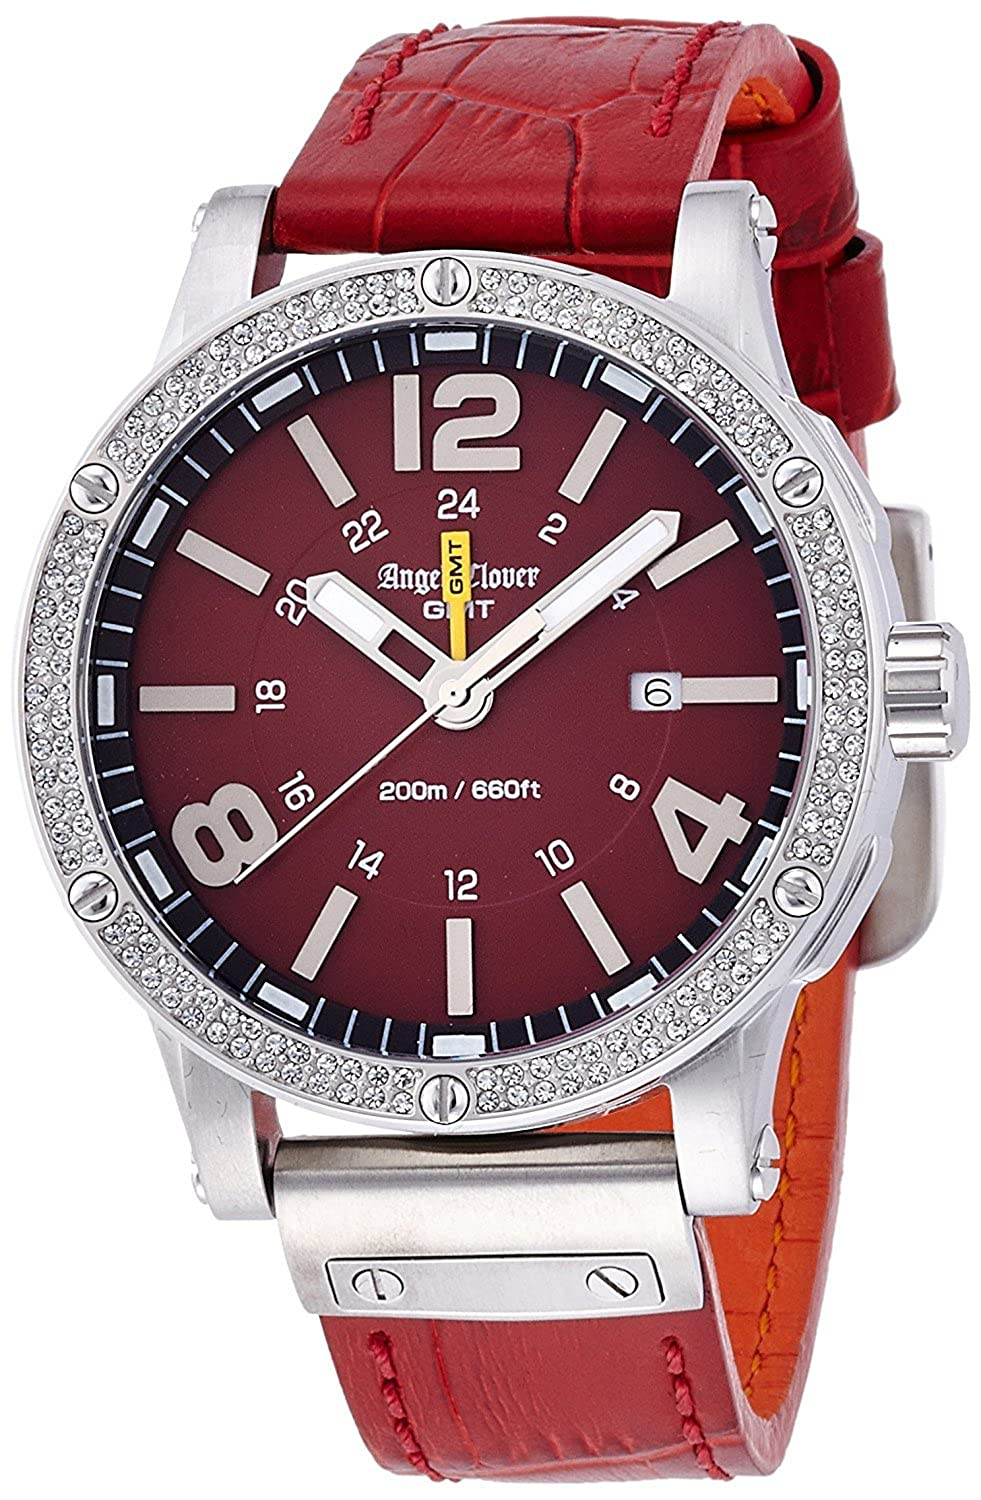 Amazon.com: Angel Clover watch Aix venture red dial 500 limited edition Swarovski 200m waterproof Date EVG46SRE-LIMITED Mens: Watches